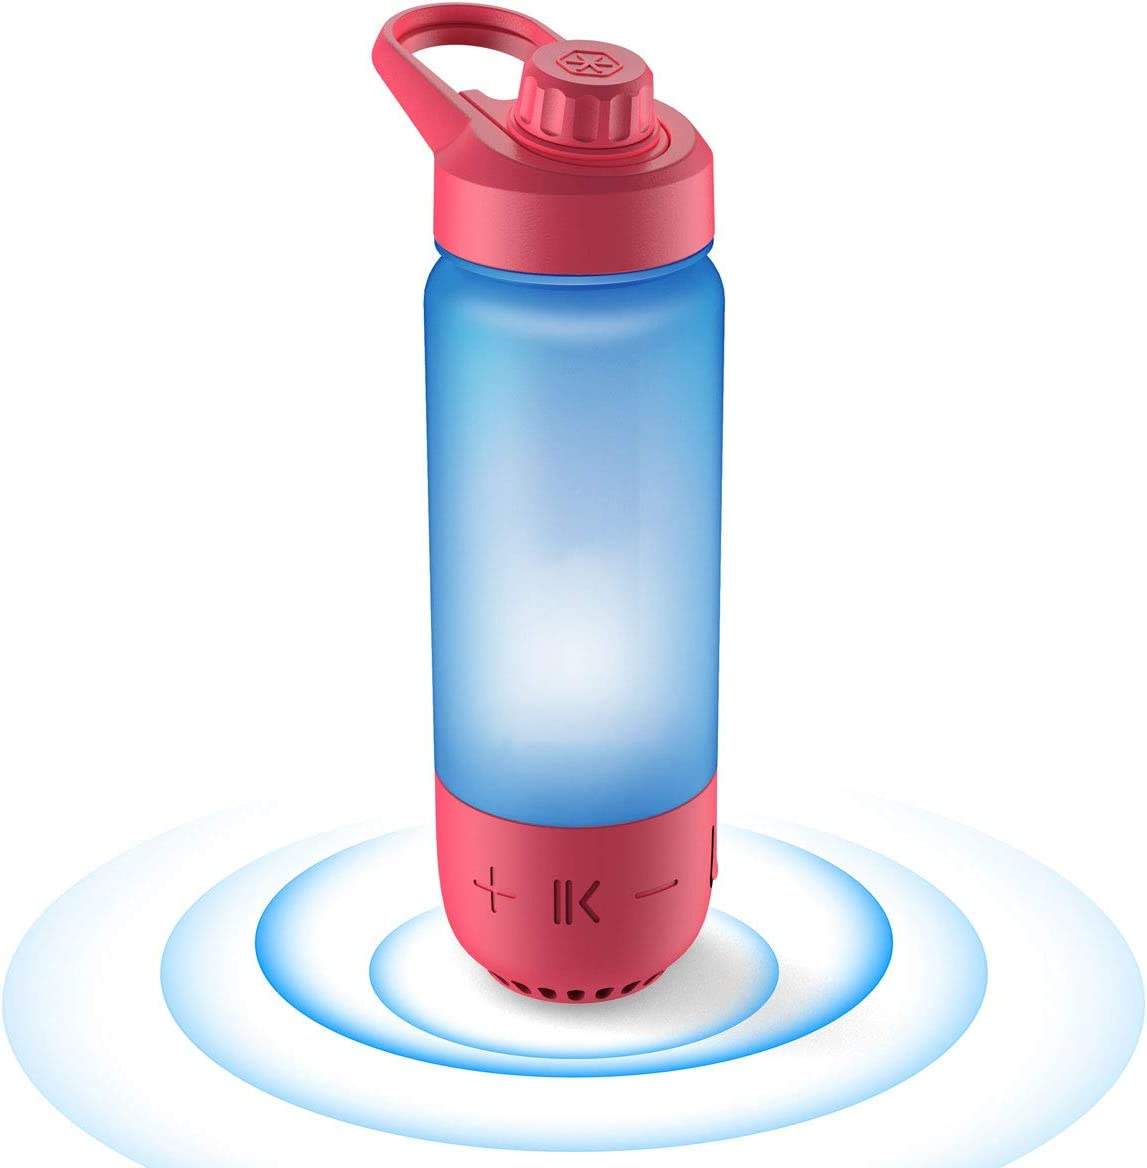 ICEWATER 3-in-1 Smart Water Bottle(Glows to Remind You to Stay Hydrated)+Bluetooth Speaker+Music Dancing Lights,22 oz,Stay Hydrated, Enjoy Music(Red)